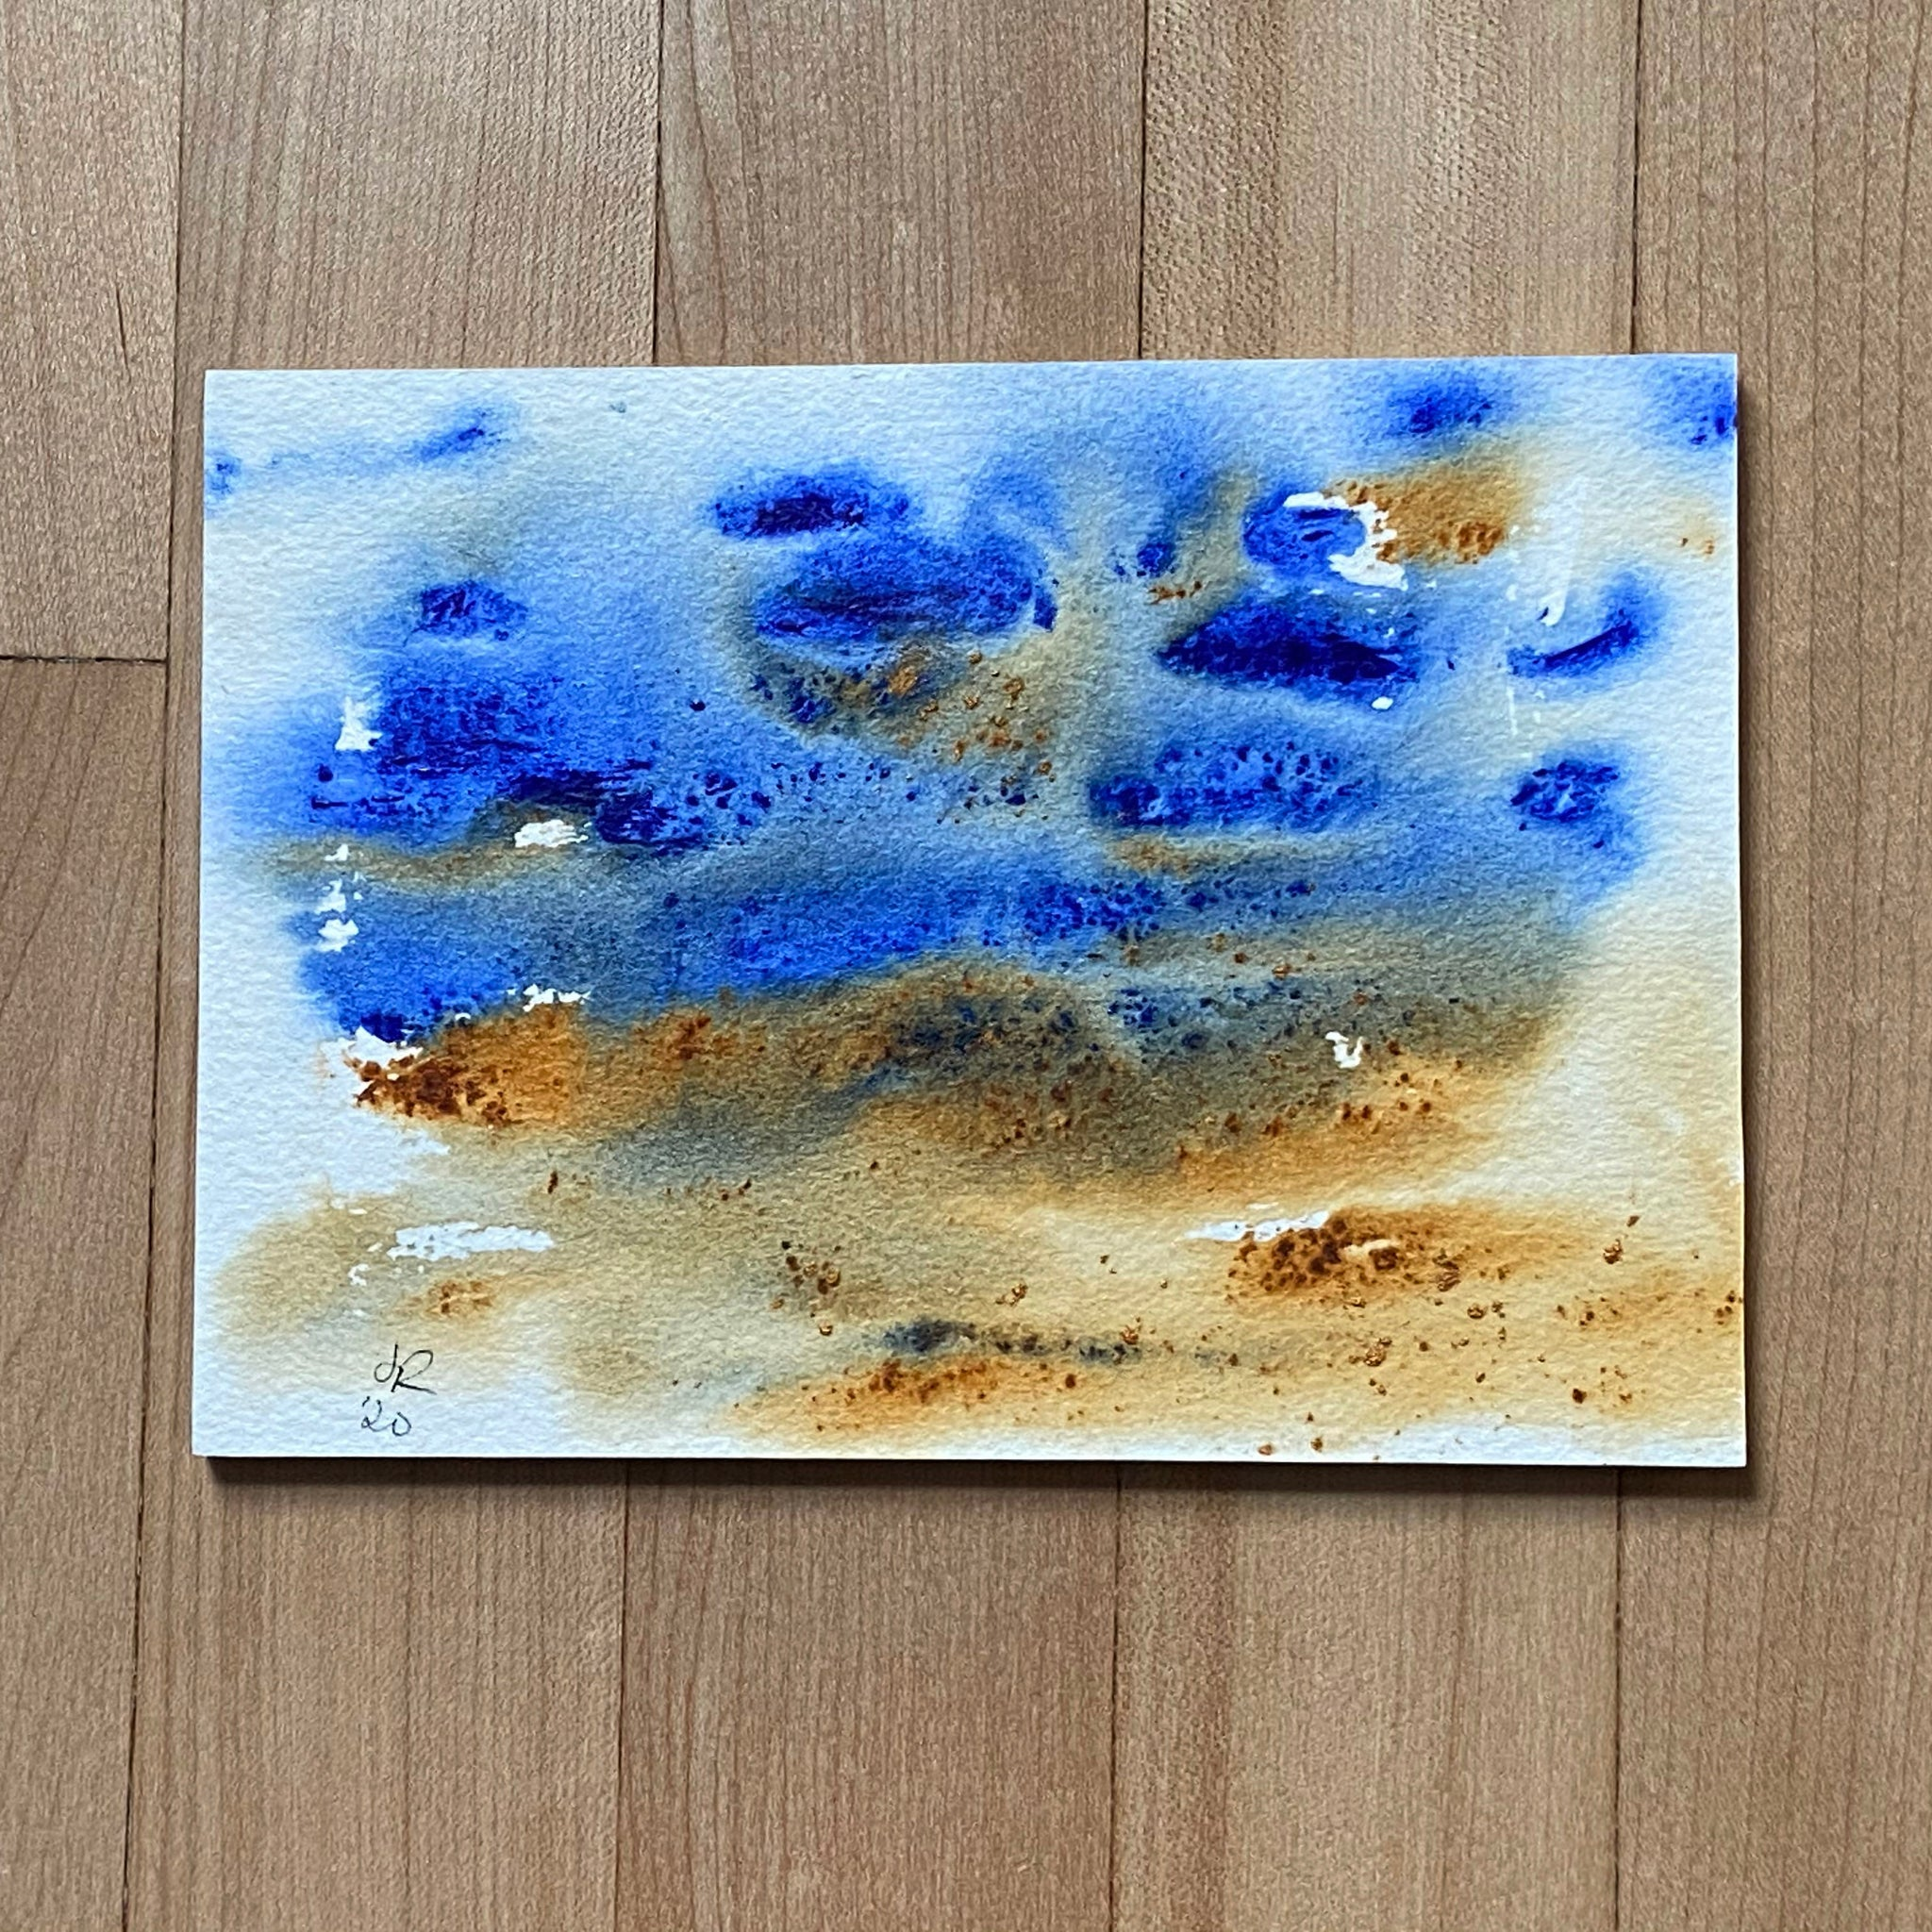 Abstract landscape in blue and sienna.